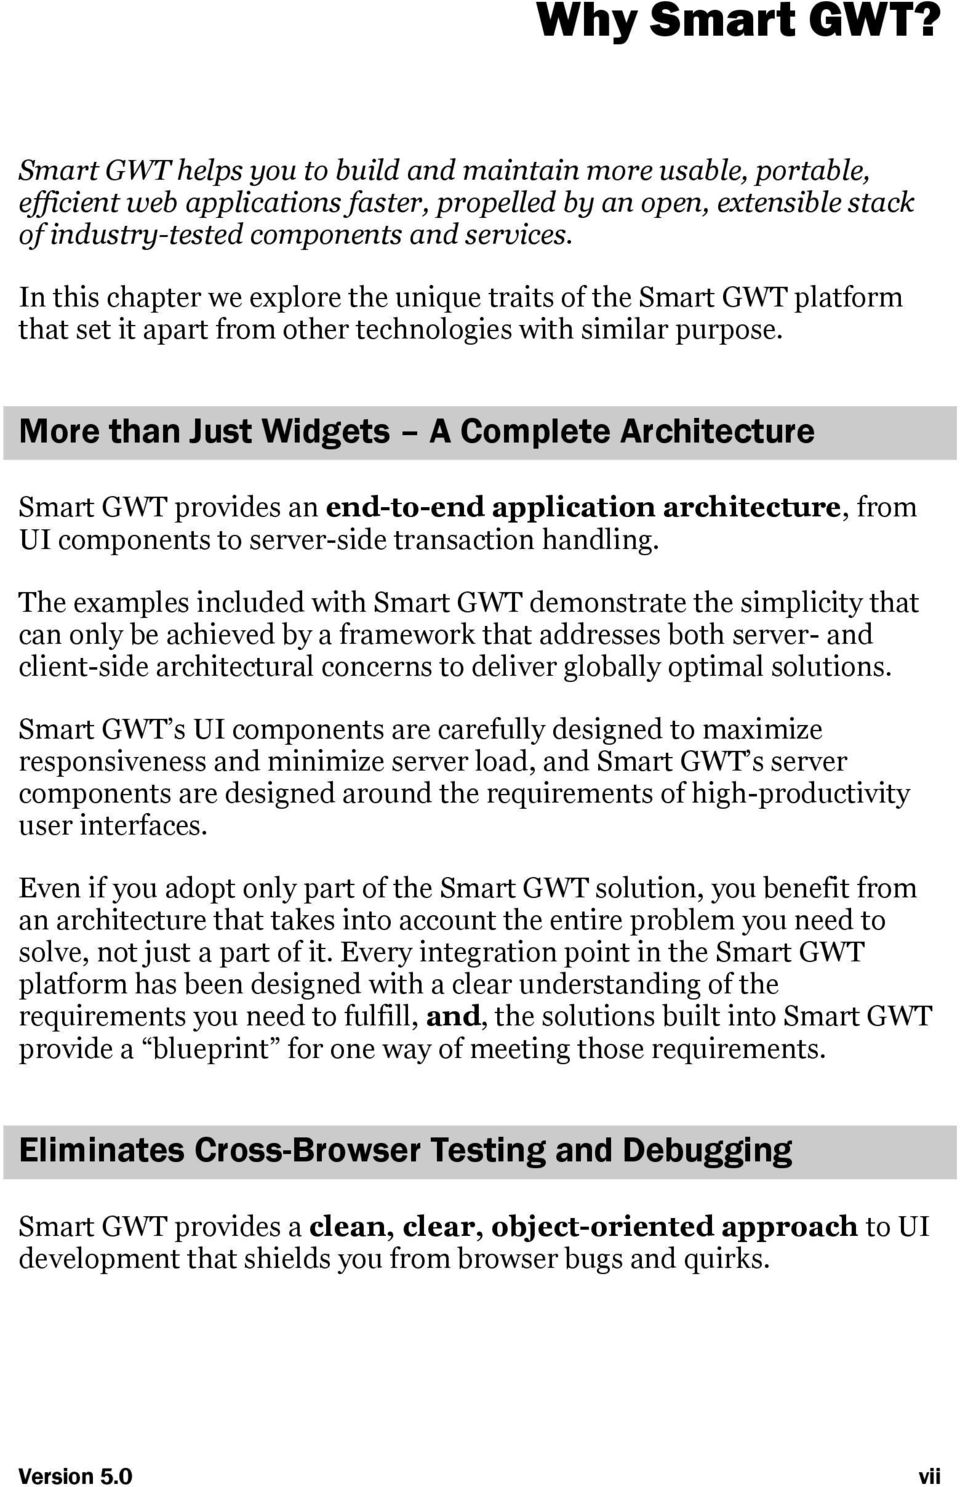 More than Just Widgets A Complete Architecture Smart GWT provides an end-to-end application architecture, from UI components to server-side transaction handling.